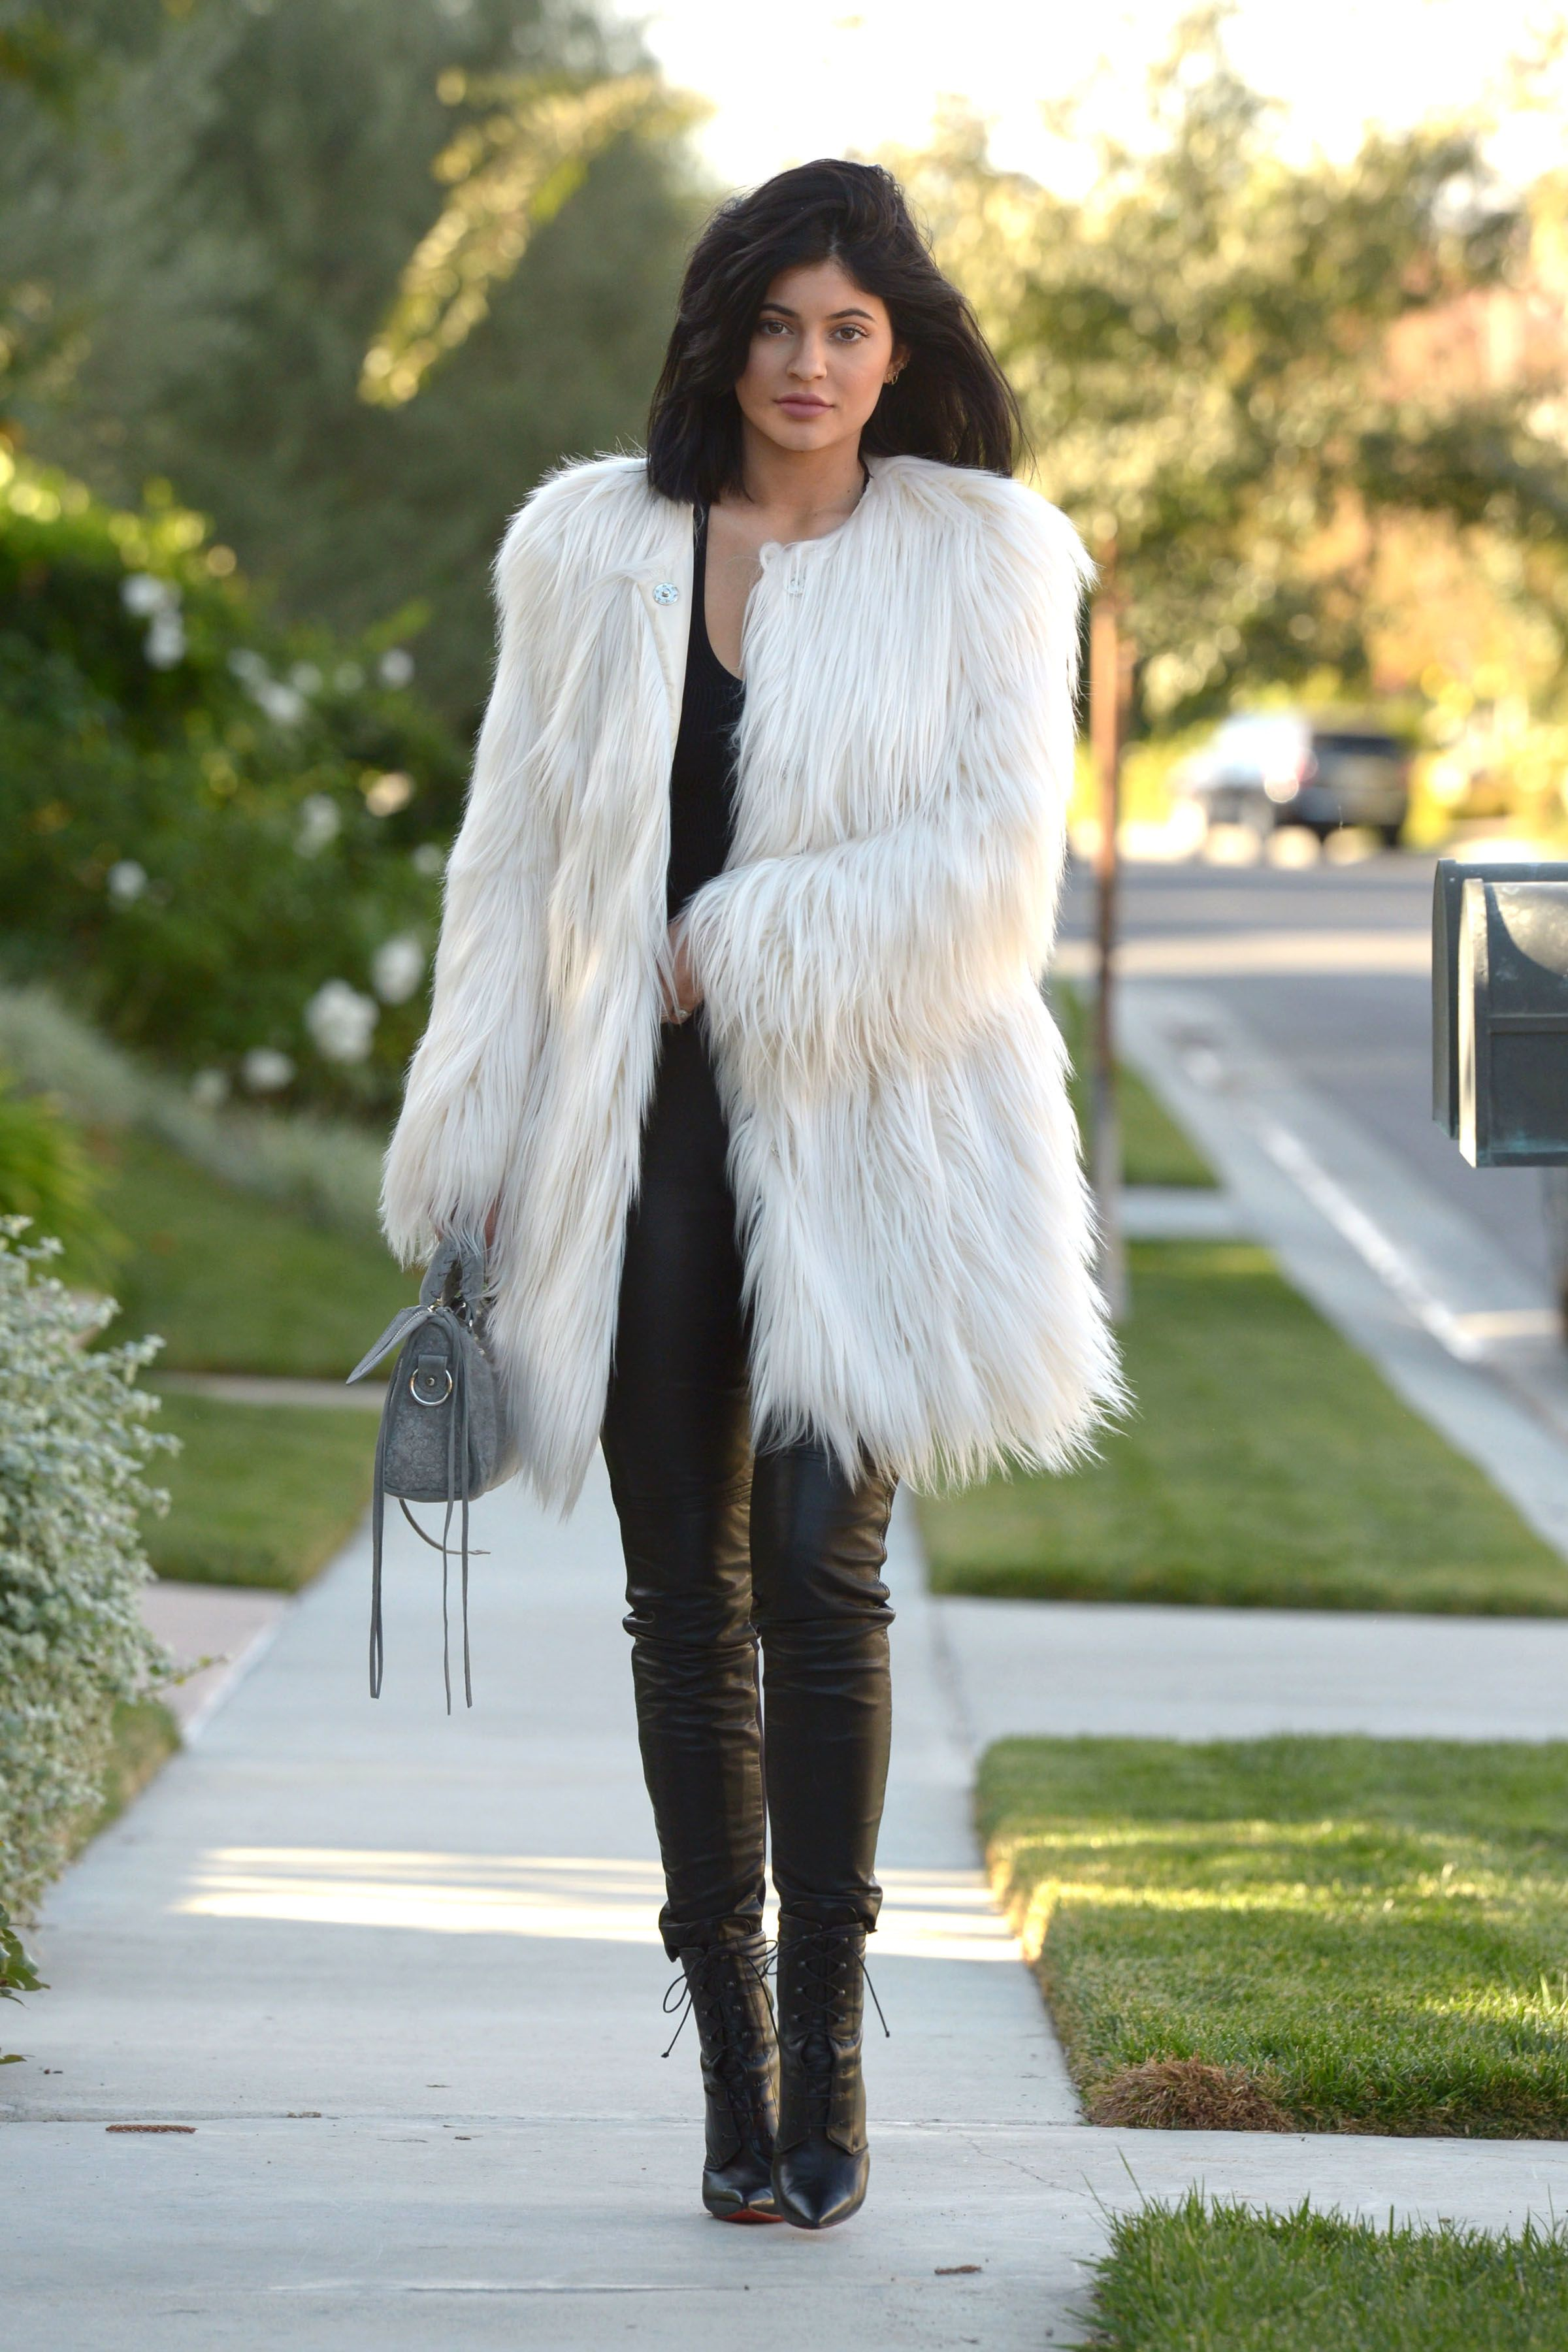 841fc559b3b0ac Kylie Jenner Looks | Celebrity Street Style | In the @GUESS Glam Faux-Fur  Coat + @marcianostyle Coy Leather Leggings